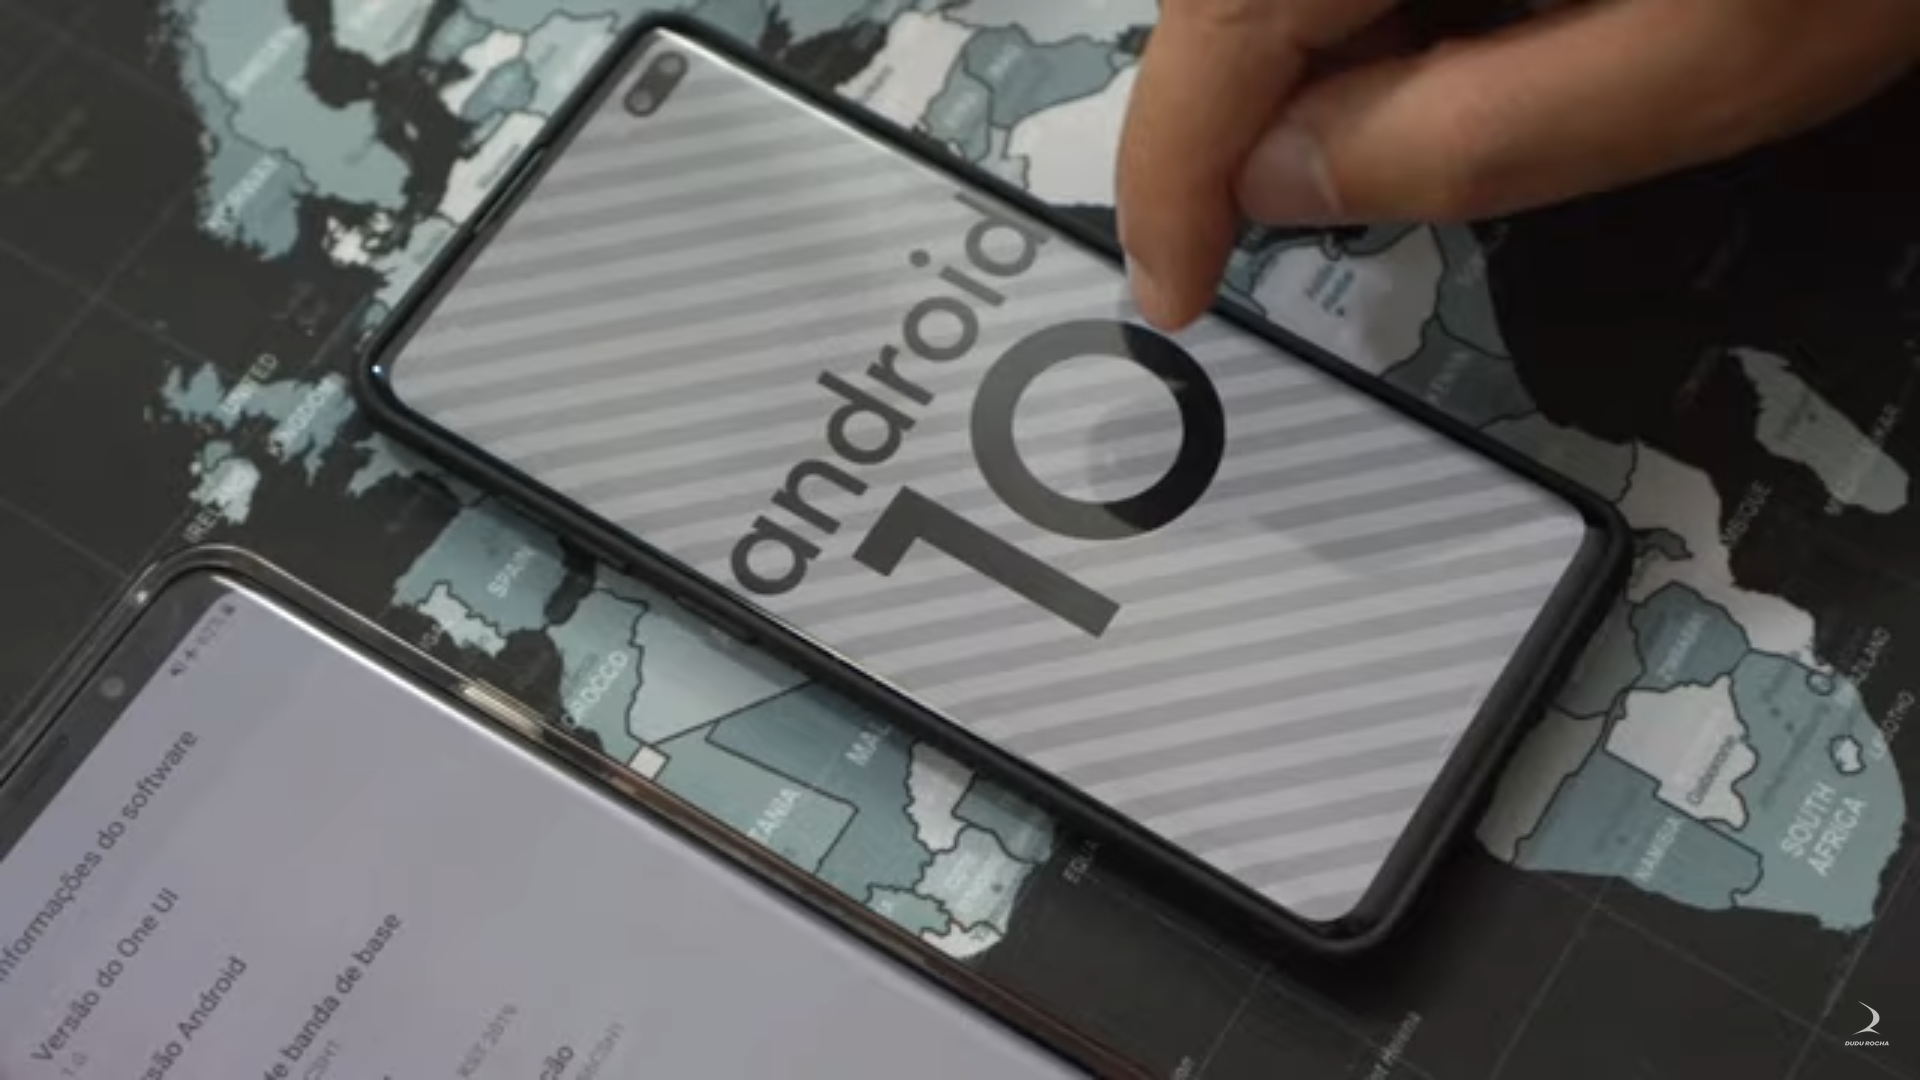 One UI 2 0 based on Android 10 for the Samsung Galaxy S10+